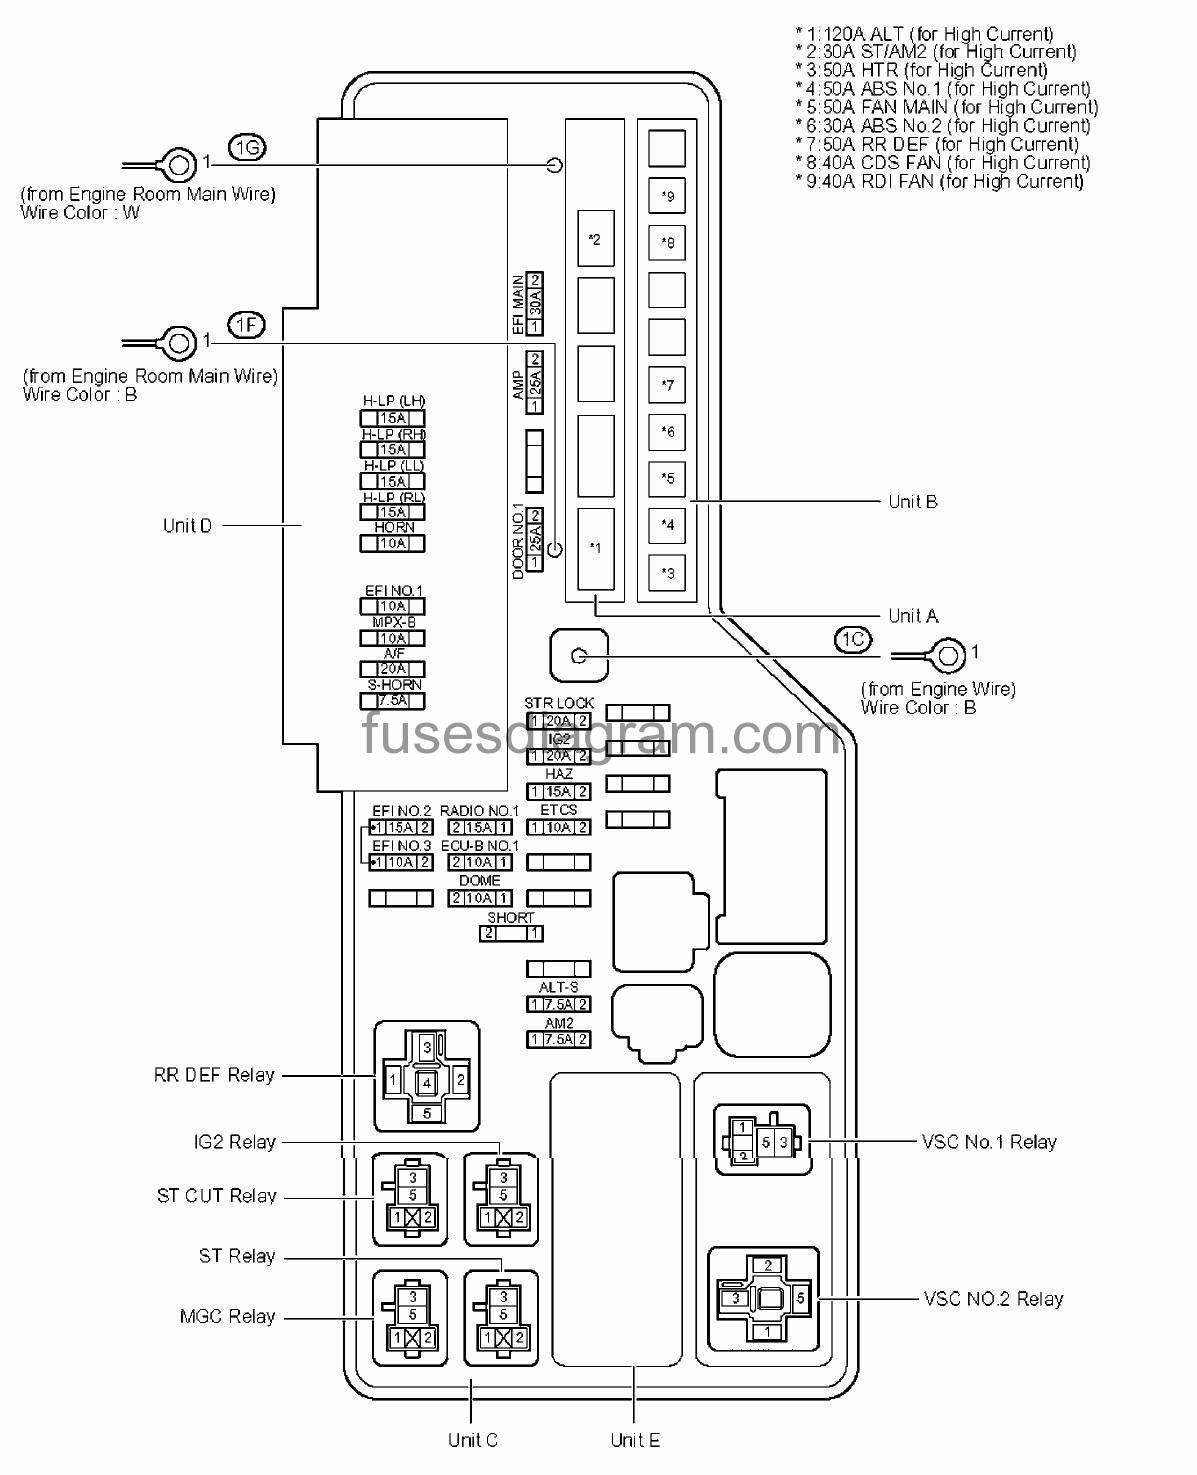 hight resolution of toyota avalon fuse panel diagram wiring diagram pictures 2007 toyota camry fuse box diagram 2000 toyota